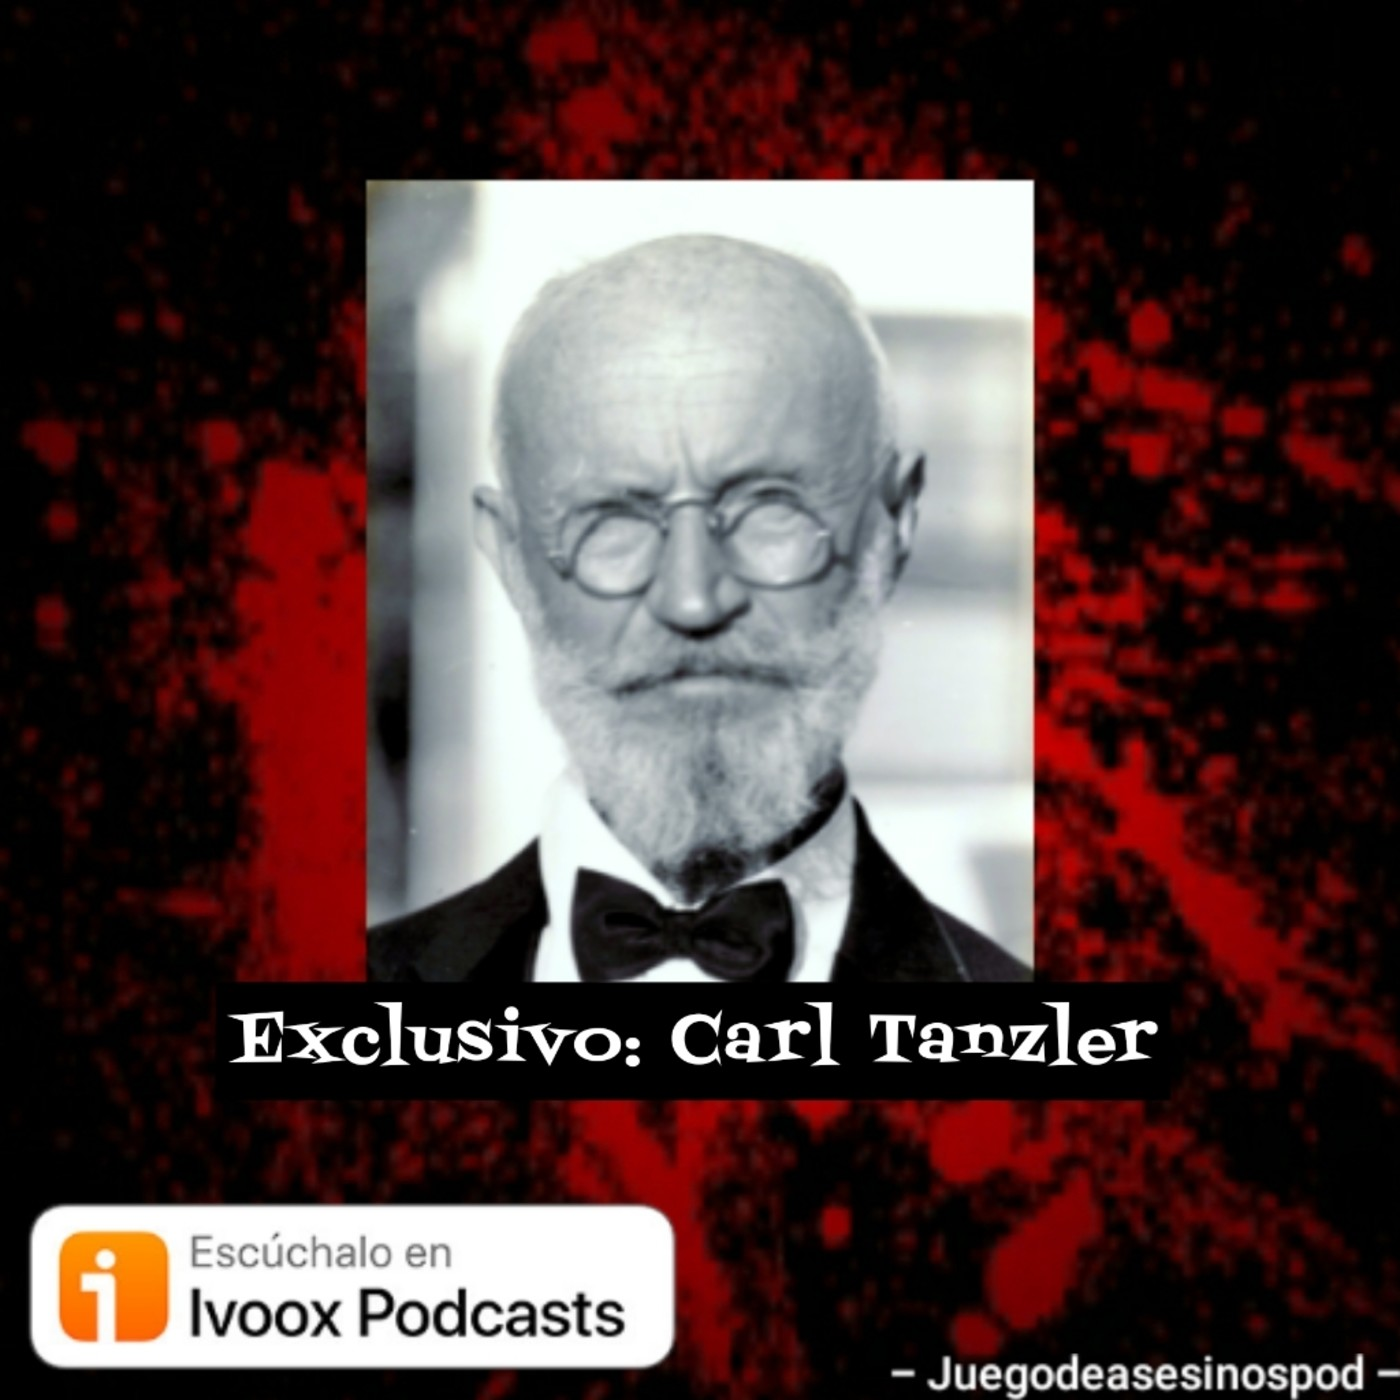 EXCLUSIVO: Carl Tanzler